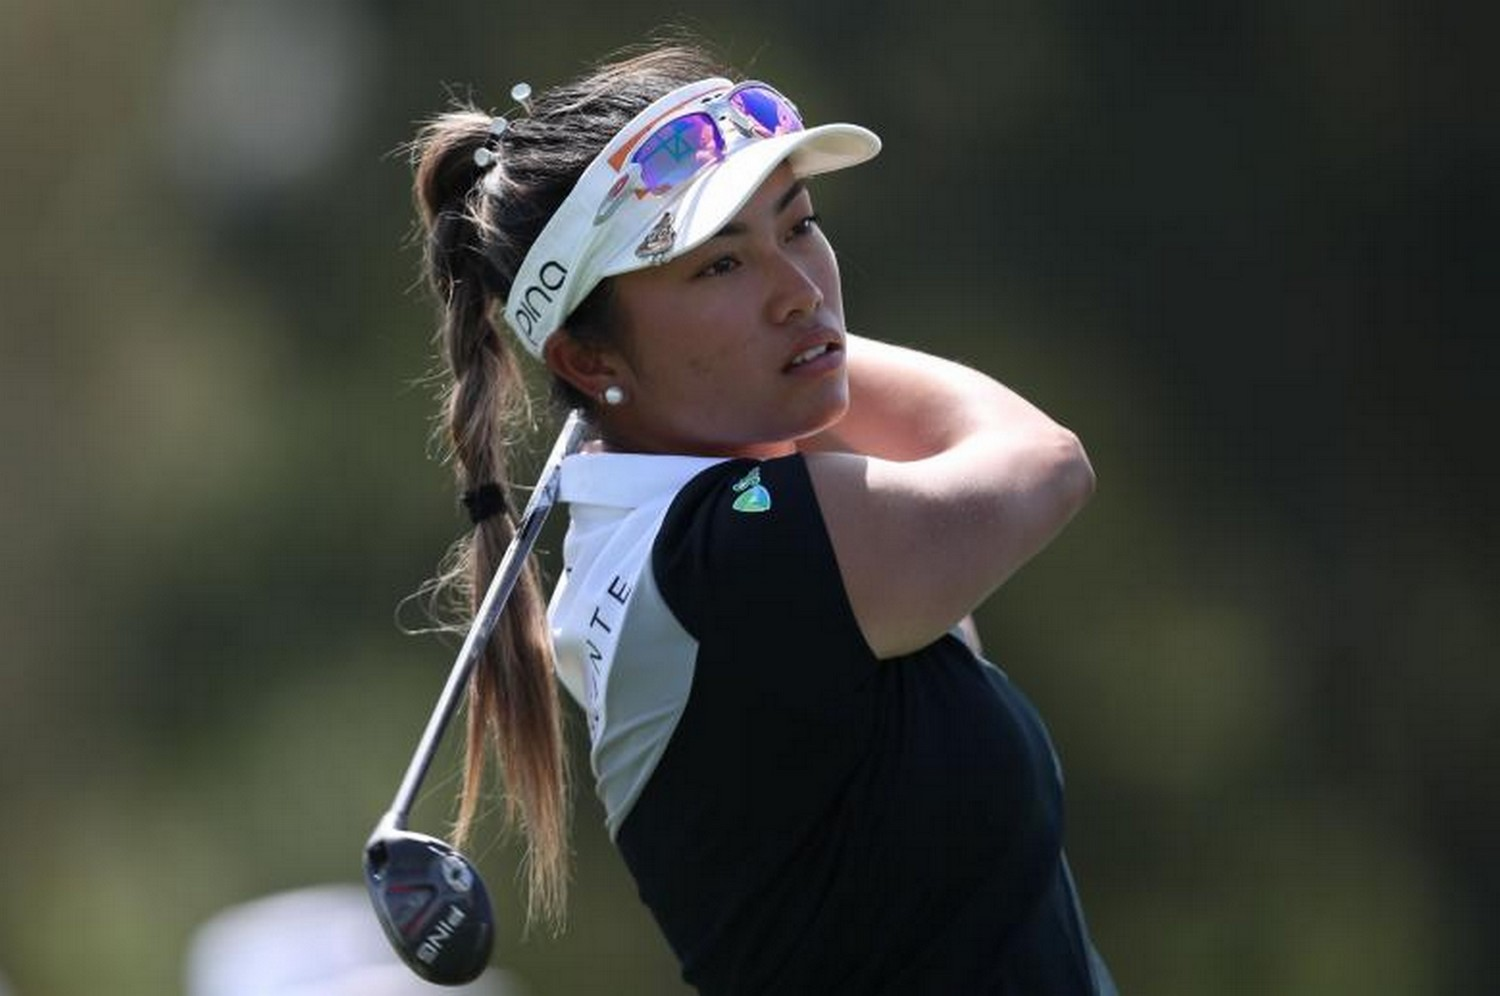 Patty Tavatanakit of Thailand tees off on the 5th hole during round one of the ANA Inspiration at the Dinah Shore course at Mission Hills Country Club on Thursday. (Photo: Getty Images/AFP)